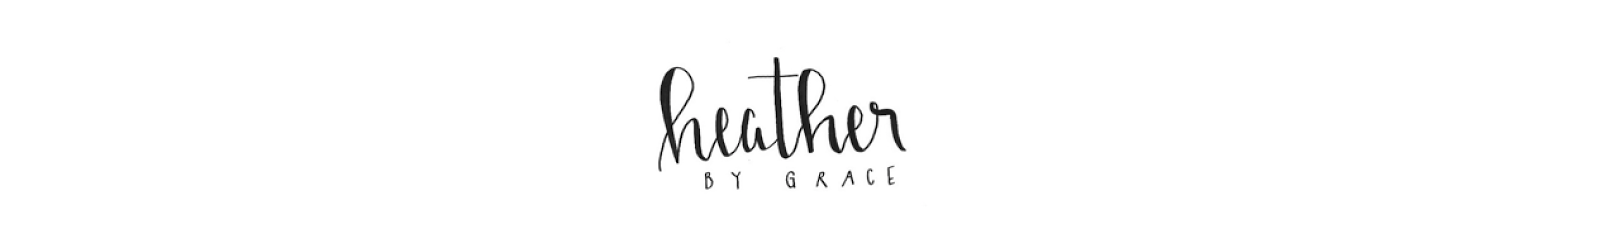 Heather By Grace